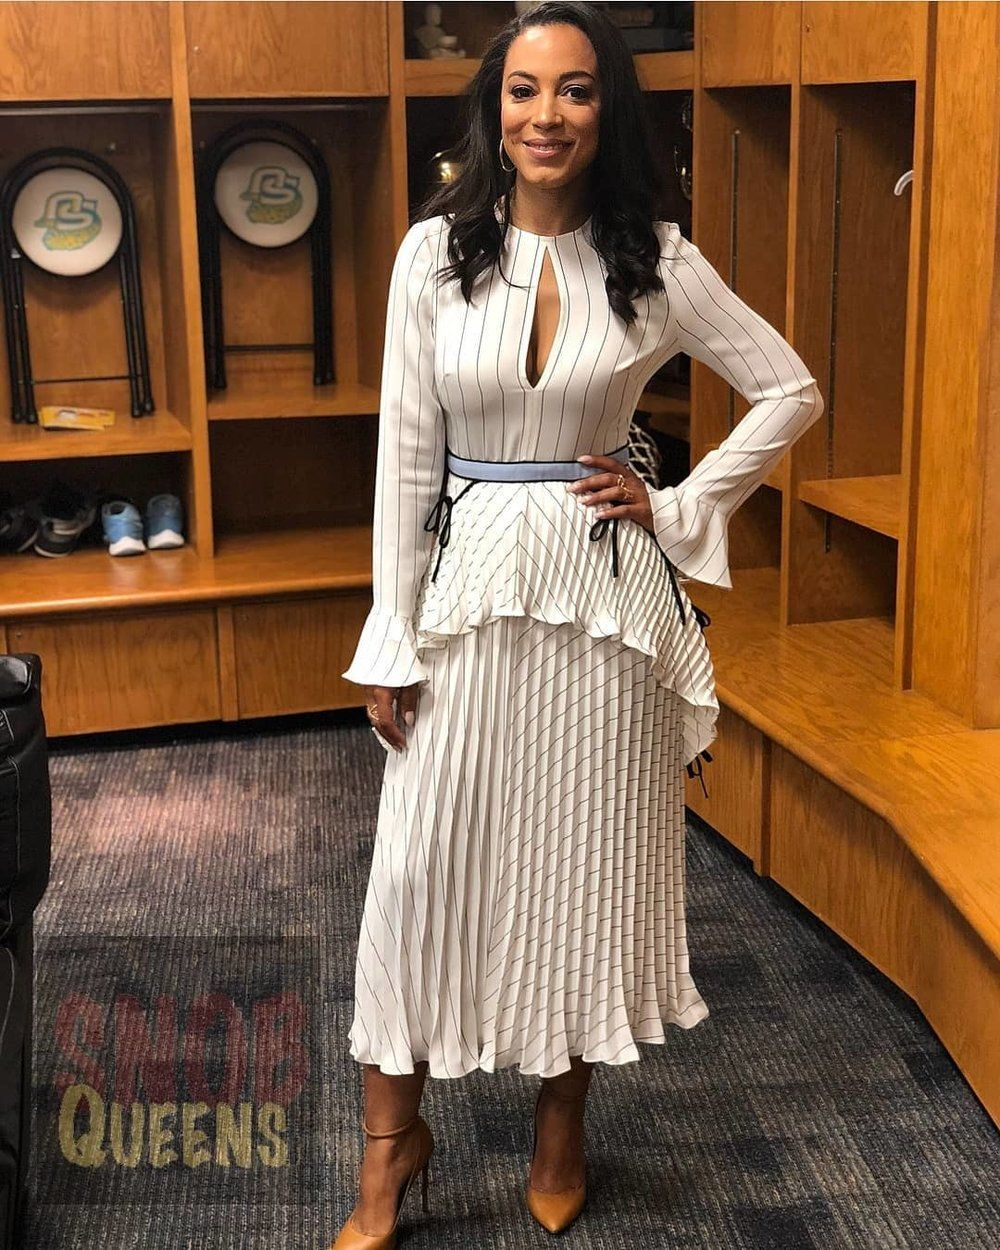 46d1750230956 Angela Rye Self Portrait Monochrome Stripe Dress #angelarye #selfportrait  #snobqueens #fashion #style